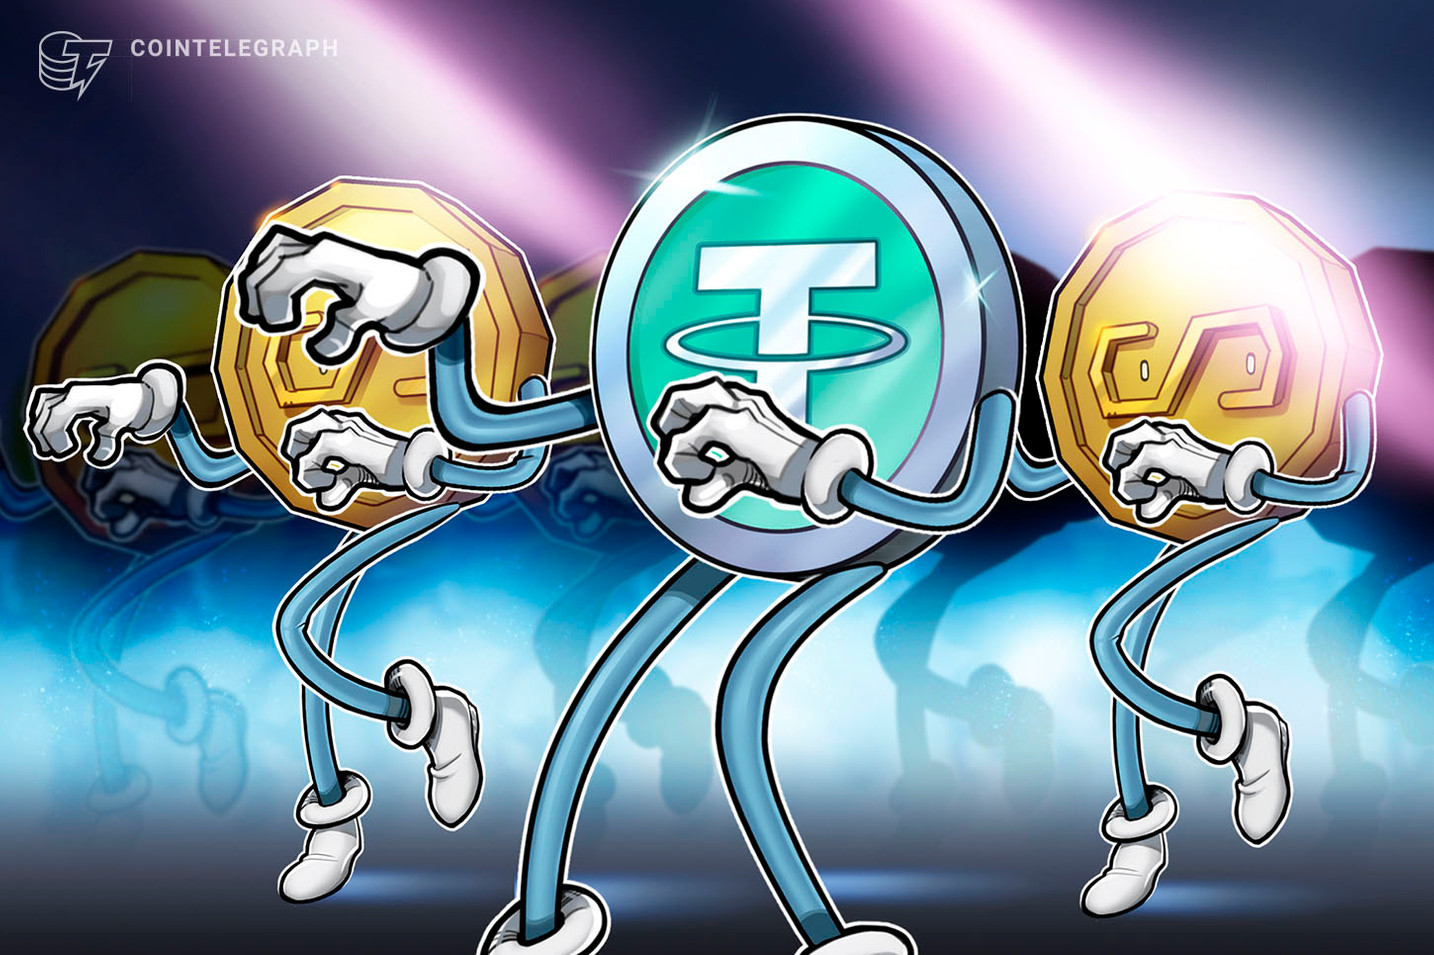 Tether Printer Isn't Pumping Up Crypto Prices, Researchers Find